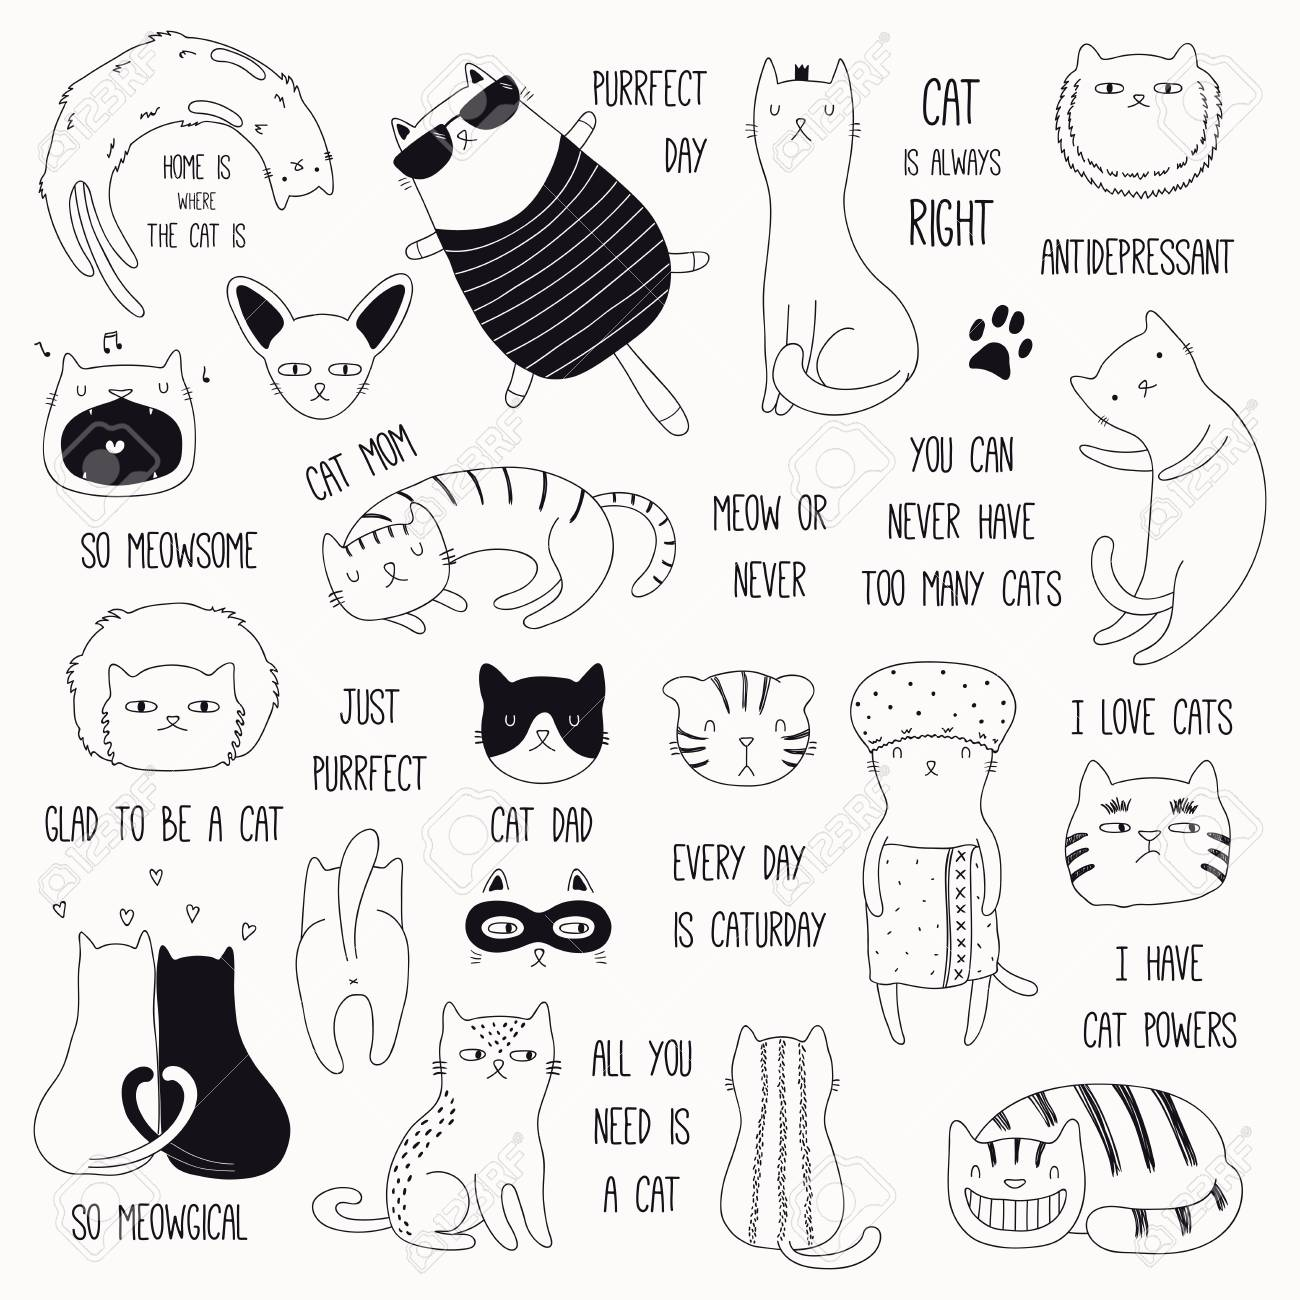 db4a99ee56 Set of cute funny black and white doodles of different cats and quotes.  Isolated objects